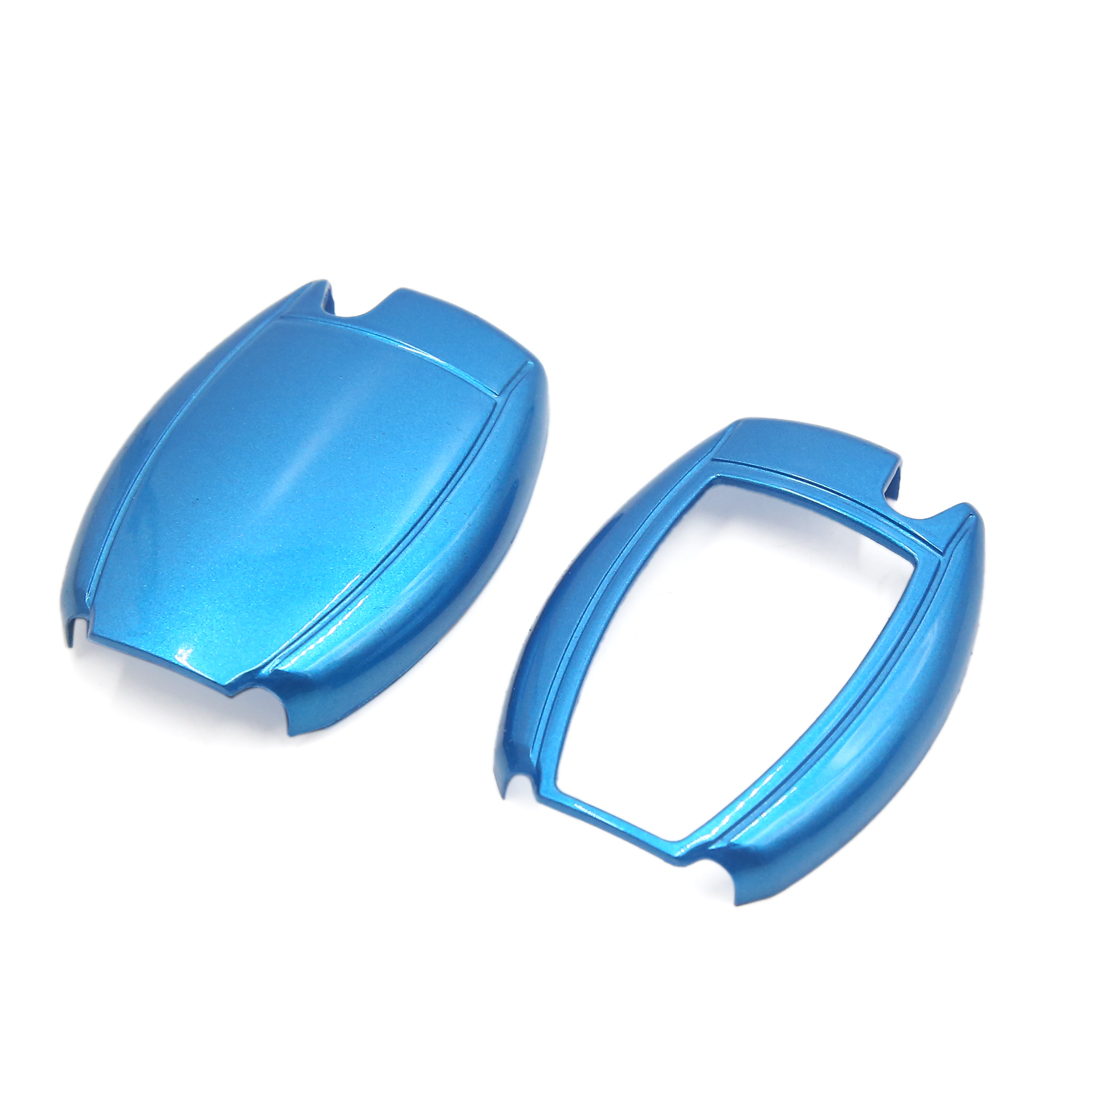 Blue ABS Plastic Remote Key Case Protector for Benz Class B C E S R M CLA CLS